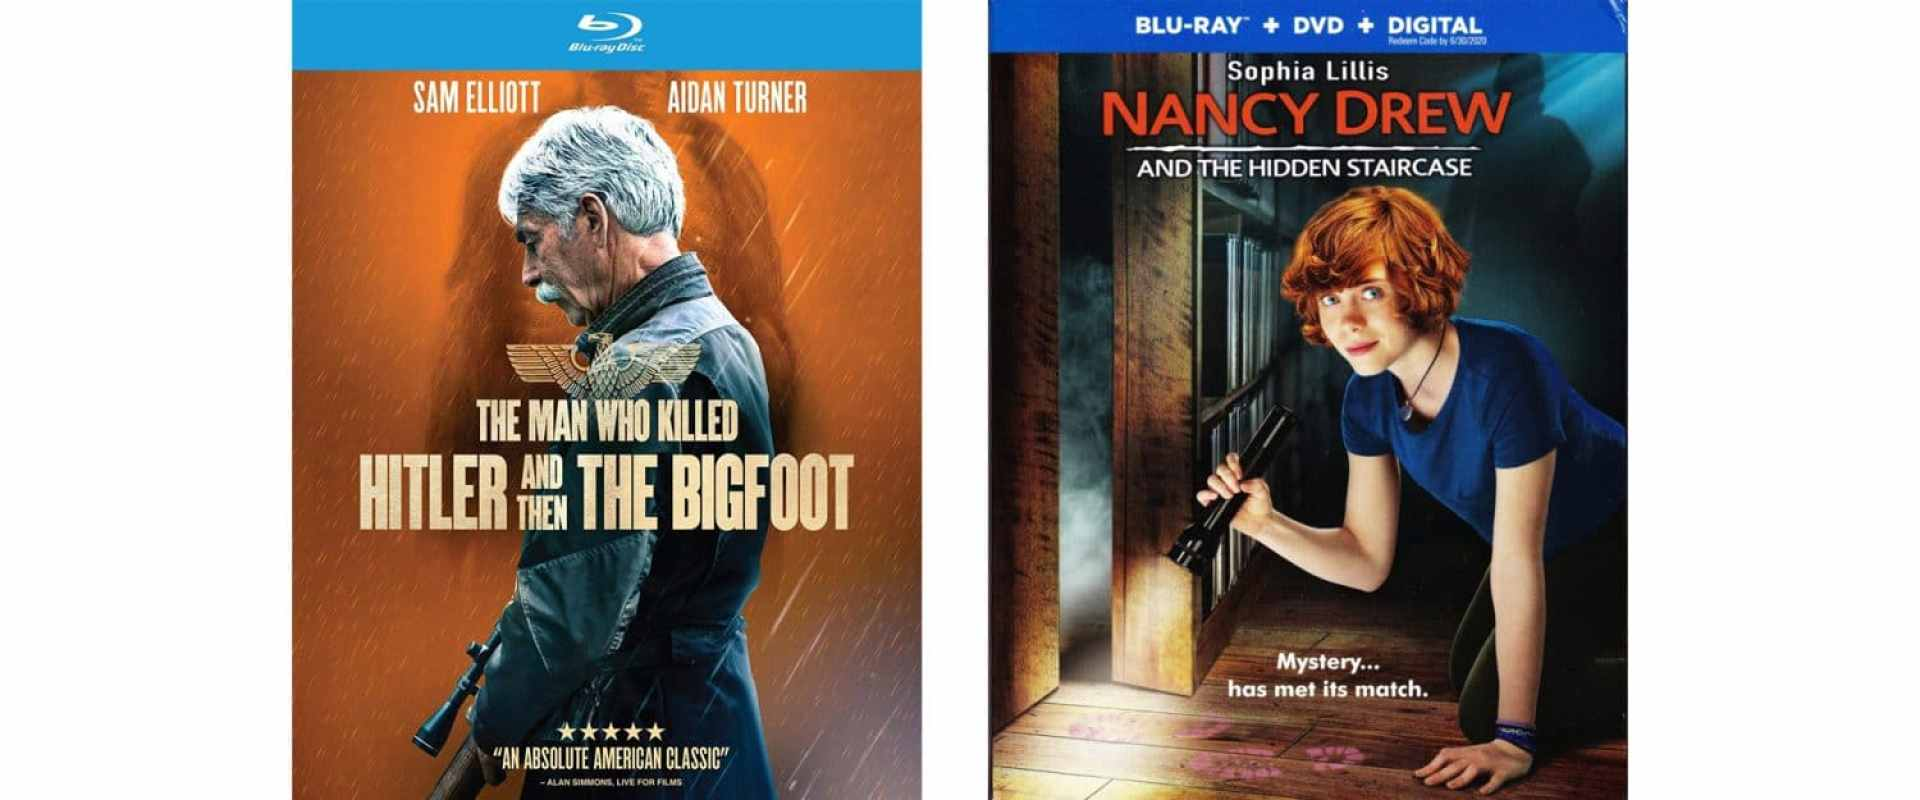 Nancy Drew and the Hidden Staircase and The Man Who Killed Hitler and then Bigfoot come to blu-ray this week.